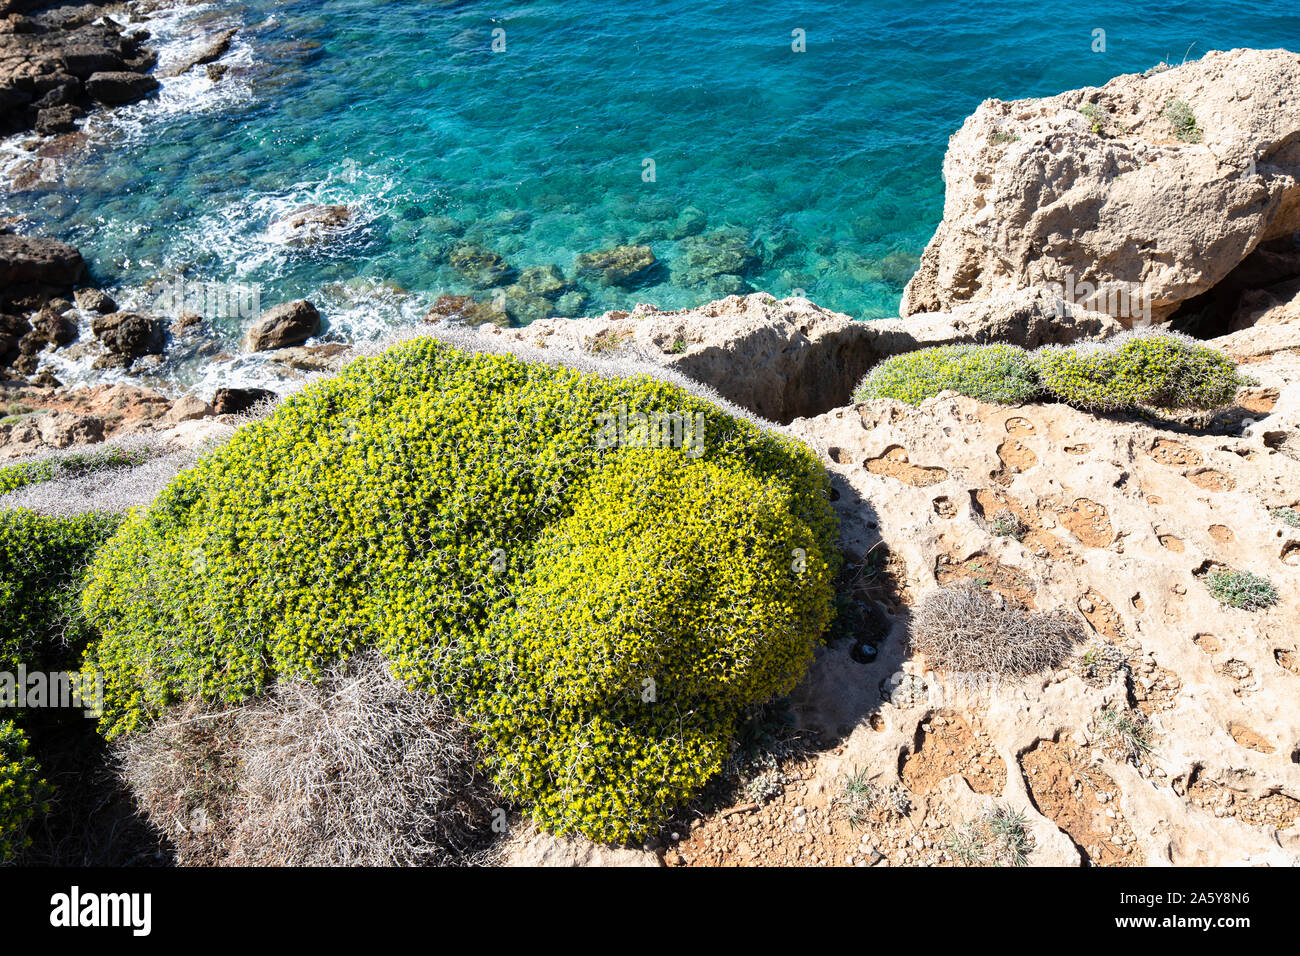 Crete landscape, blue sea and sky on a sunny day in background, rocks and green hills. Stock Photo